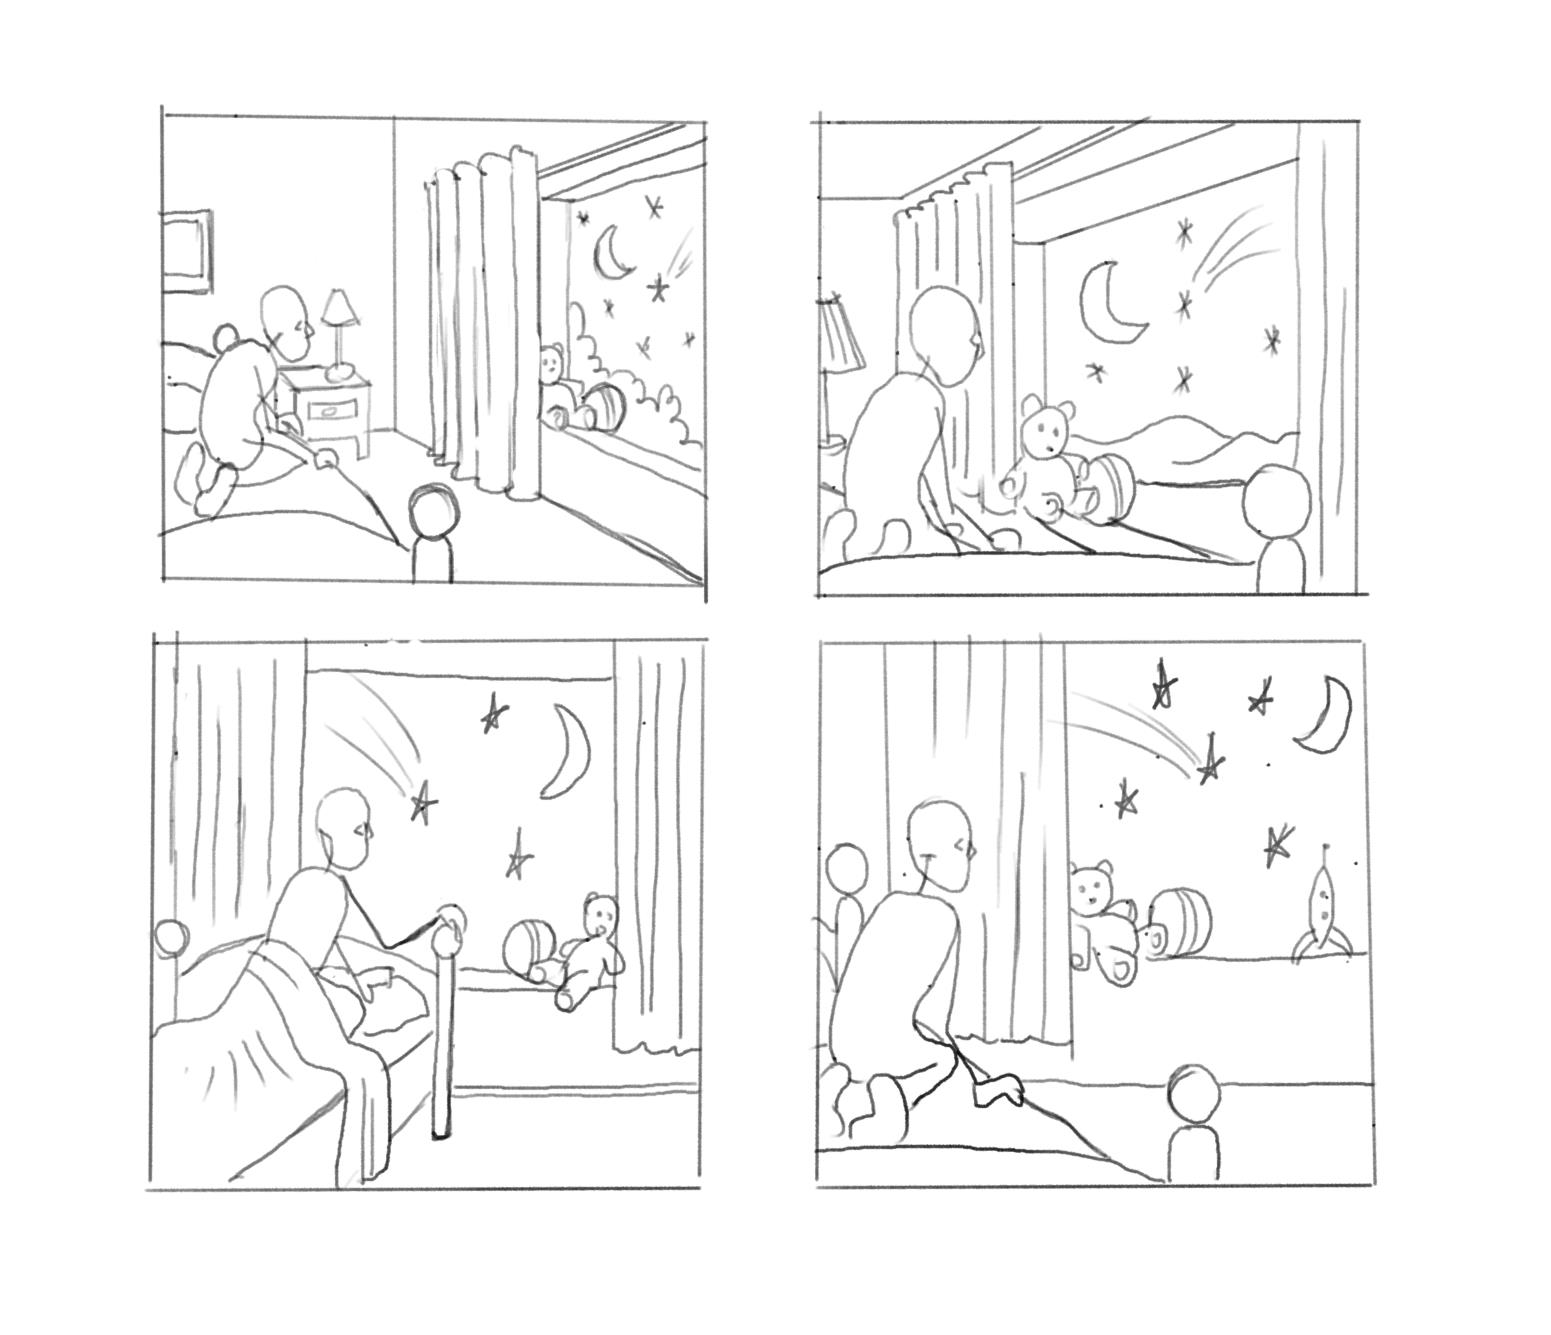 thumbnails for inner title page.jpg